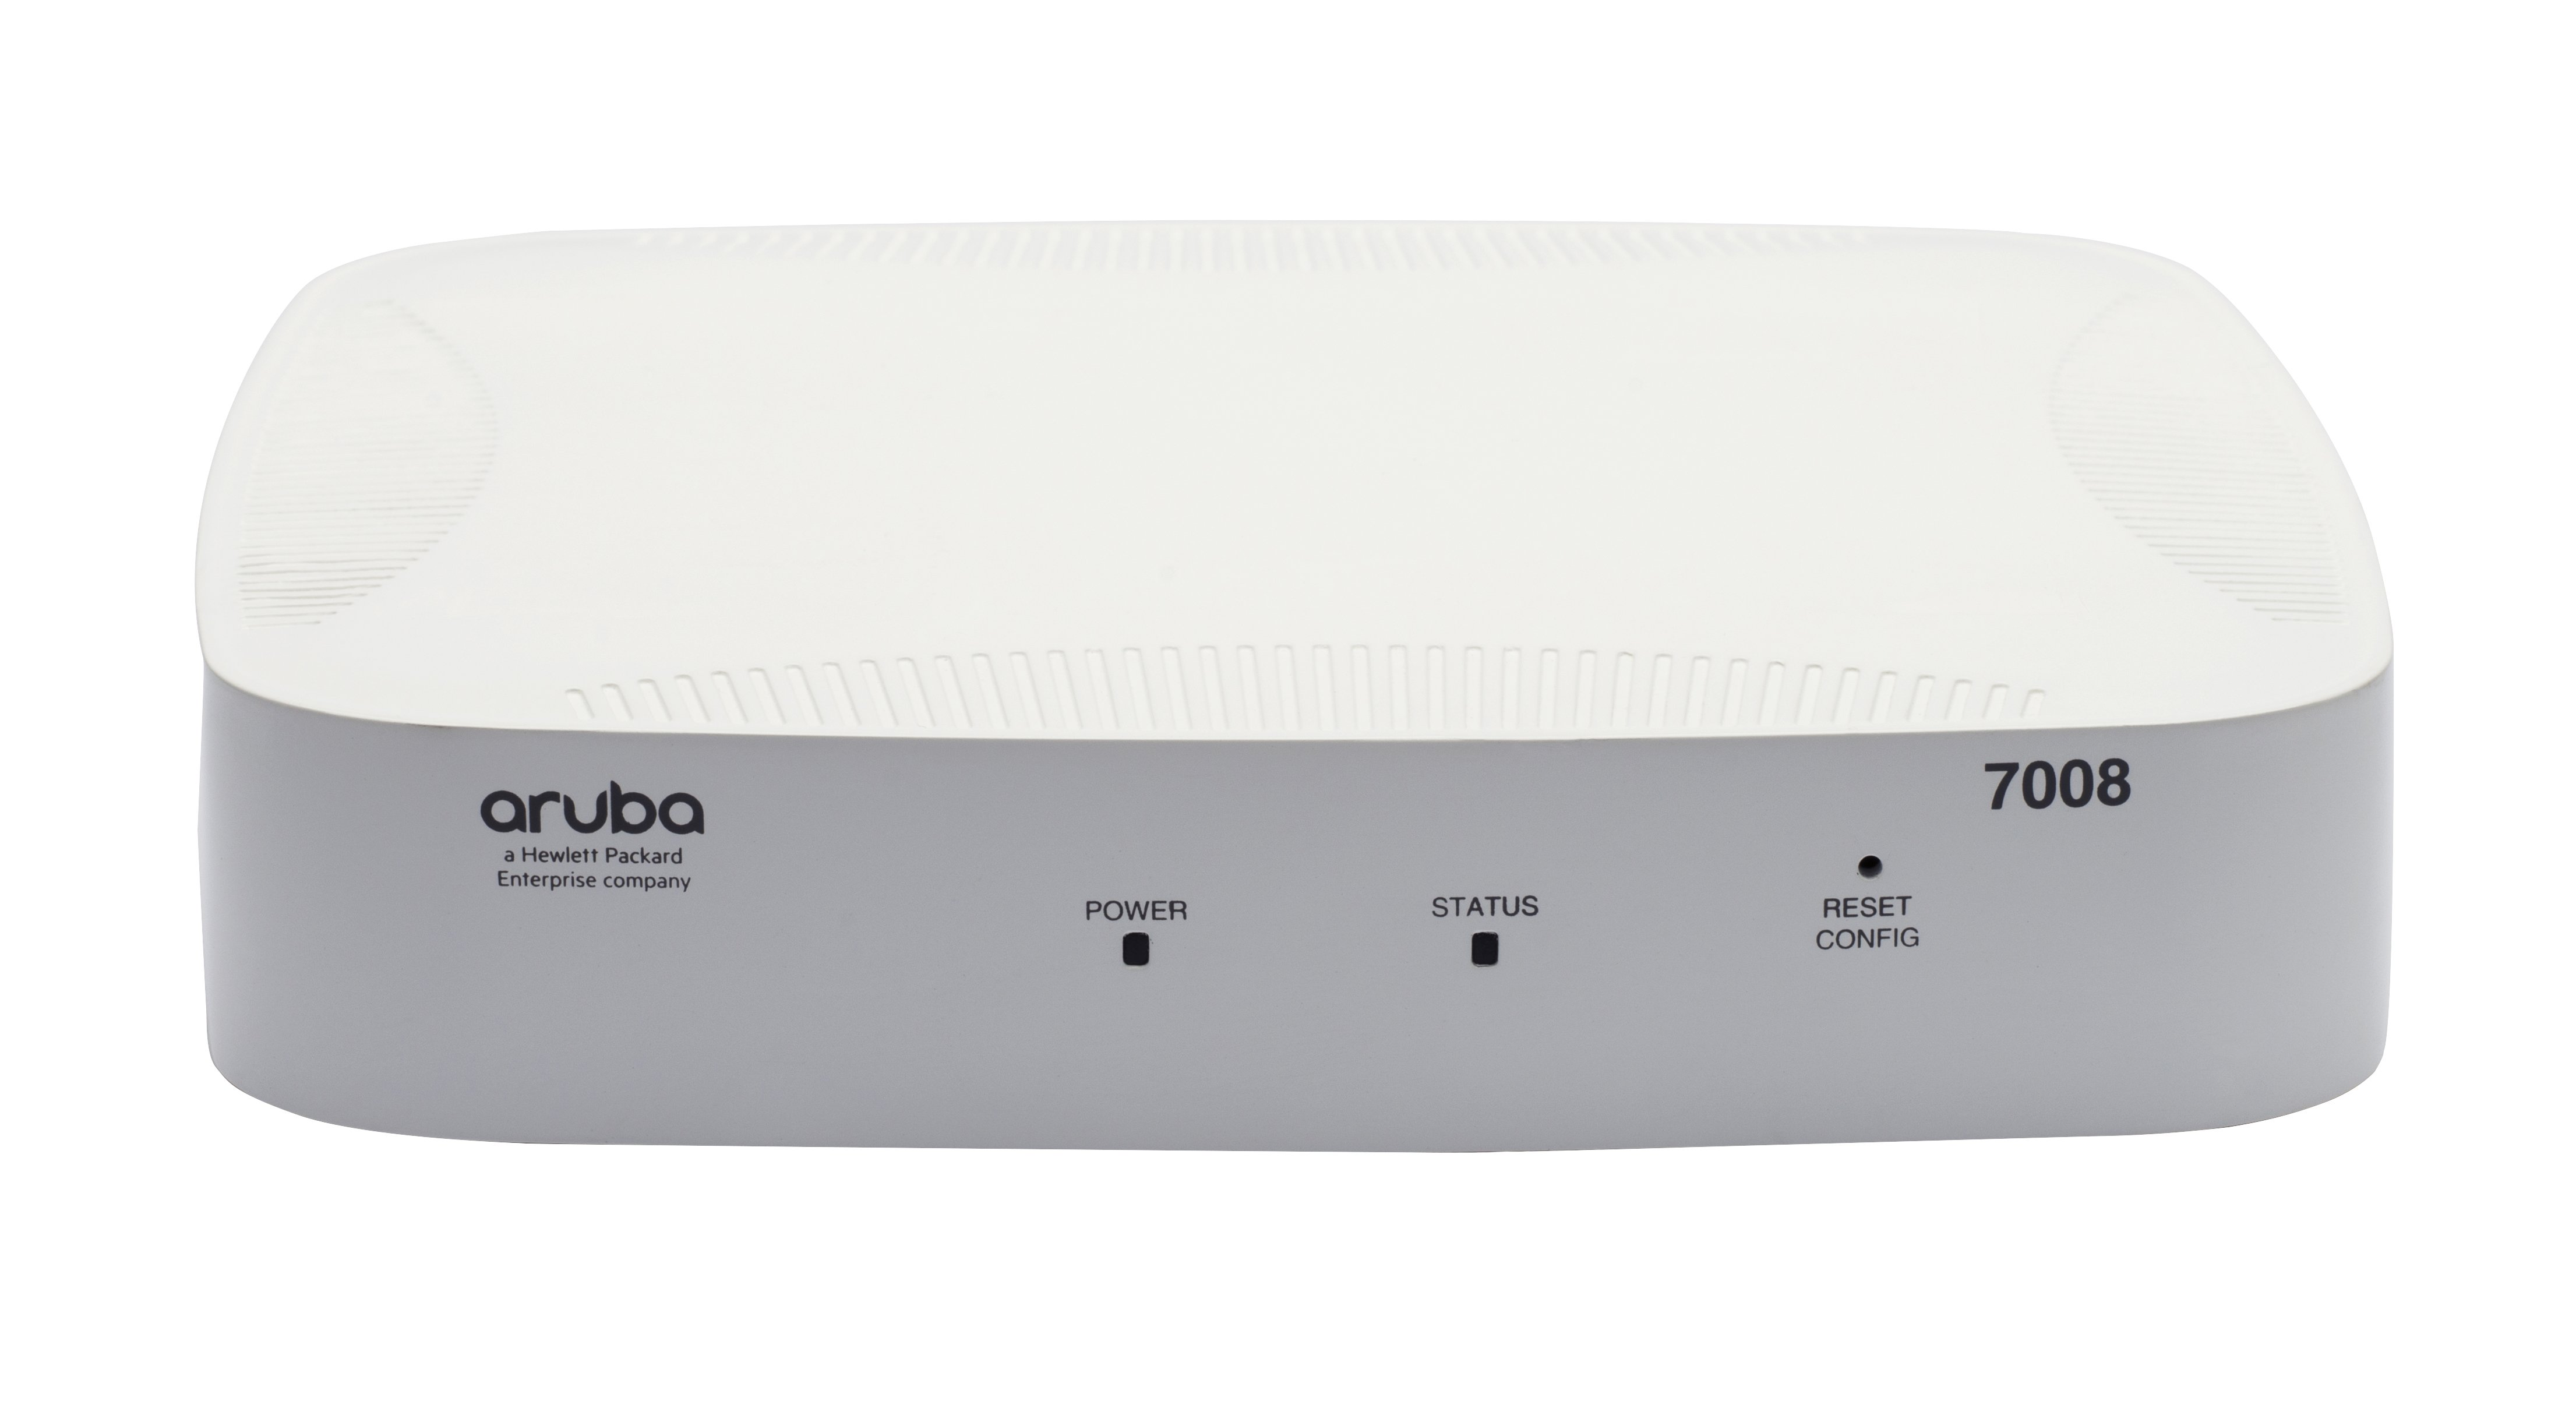 Hpe Aruba 7008 8 Port Gbe 100w Poe Controller Fips Taa Rest Jx931a 8p Switches Small Business Cisco Support Community